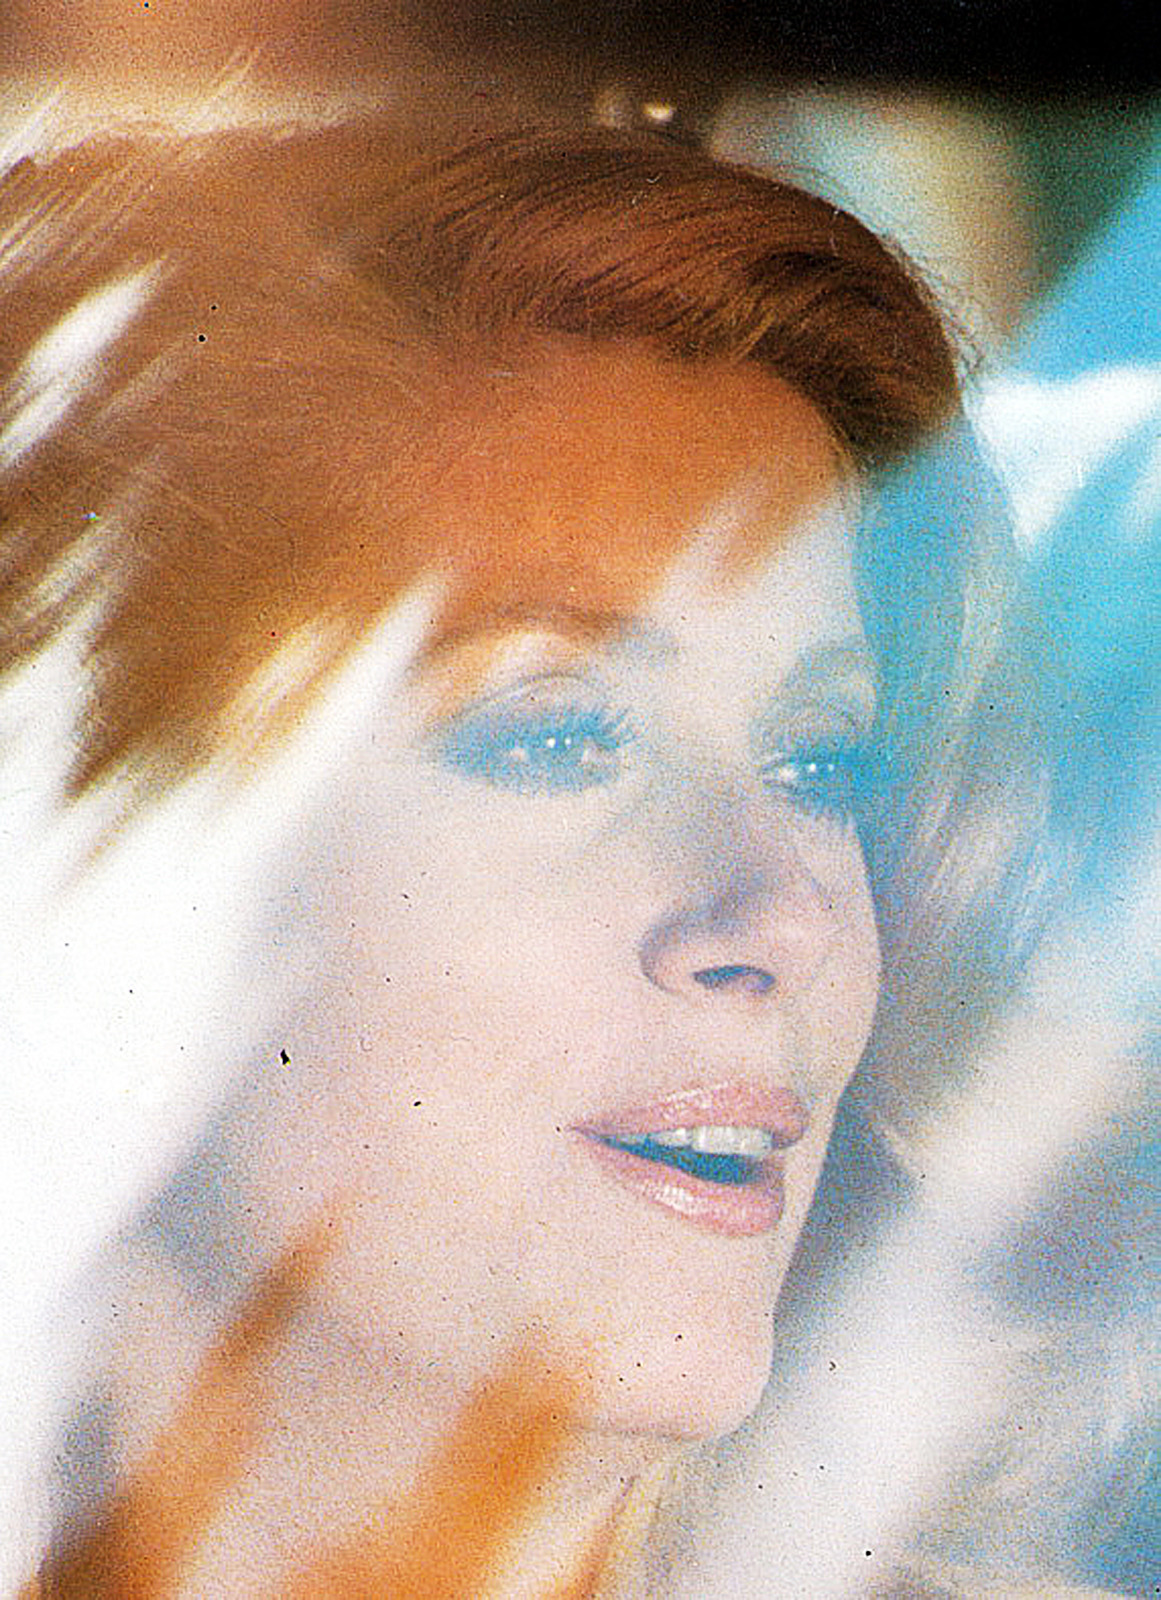 moronicalake:  5/50 photos of Catherine Deneuve   Catherine Deneuve for Courage Fuyons dir. by Yves Robert (1979)